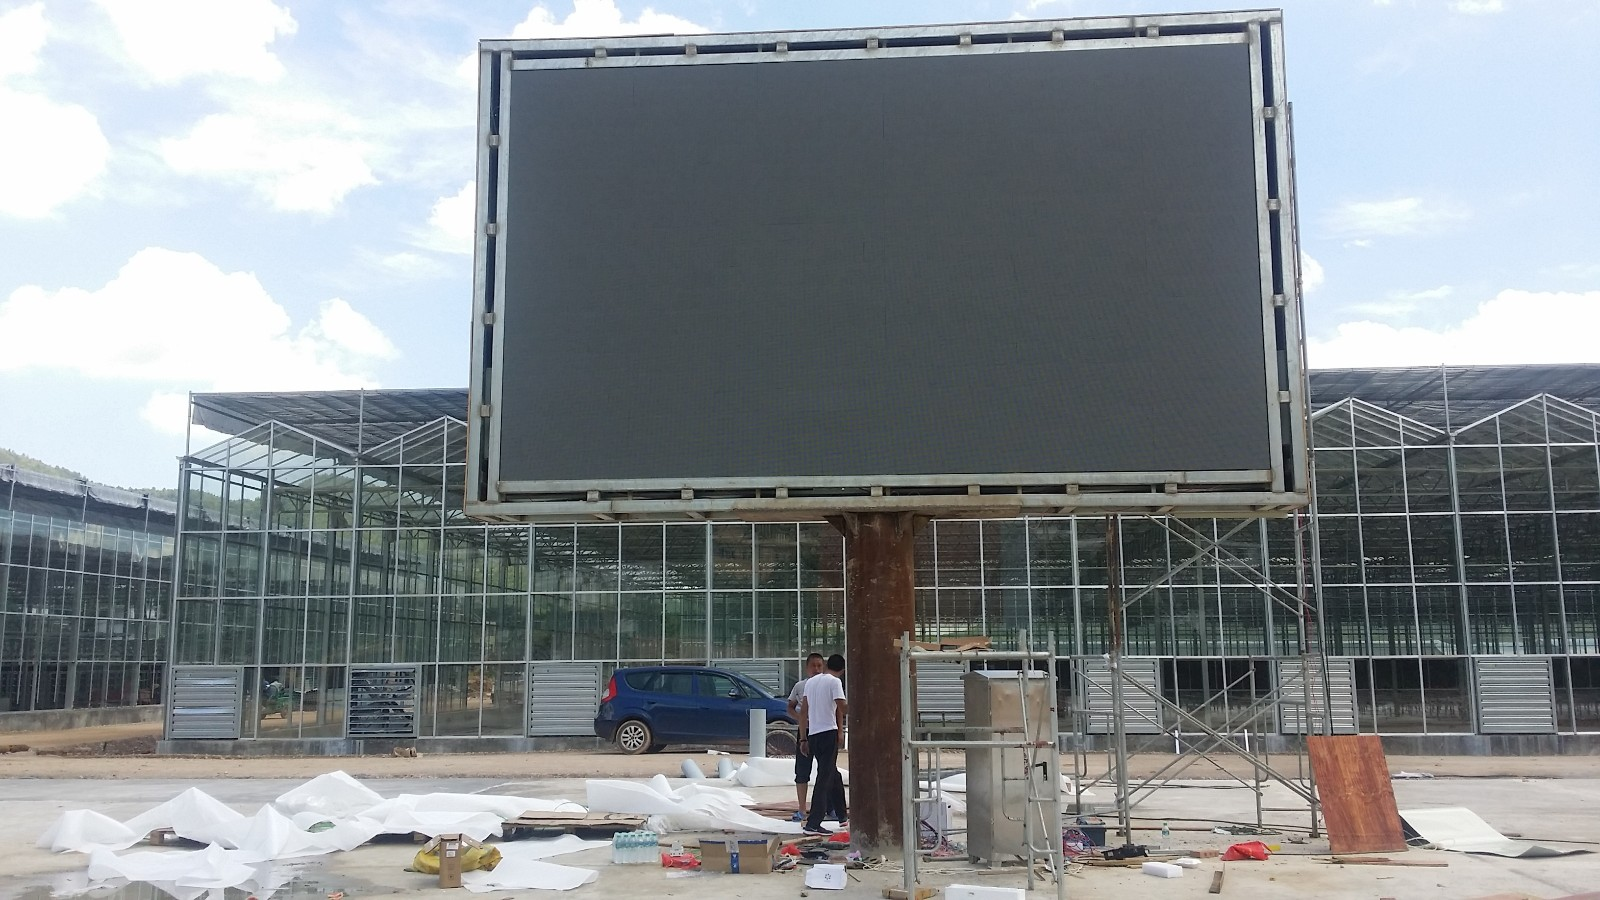 Outdoors P6 Full Color LED Screen(Size:25 ㎡)in Ganzhou, Jiangxi